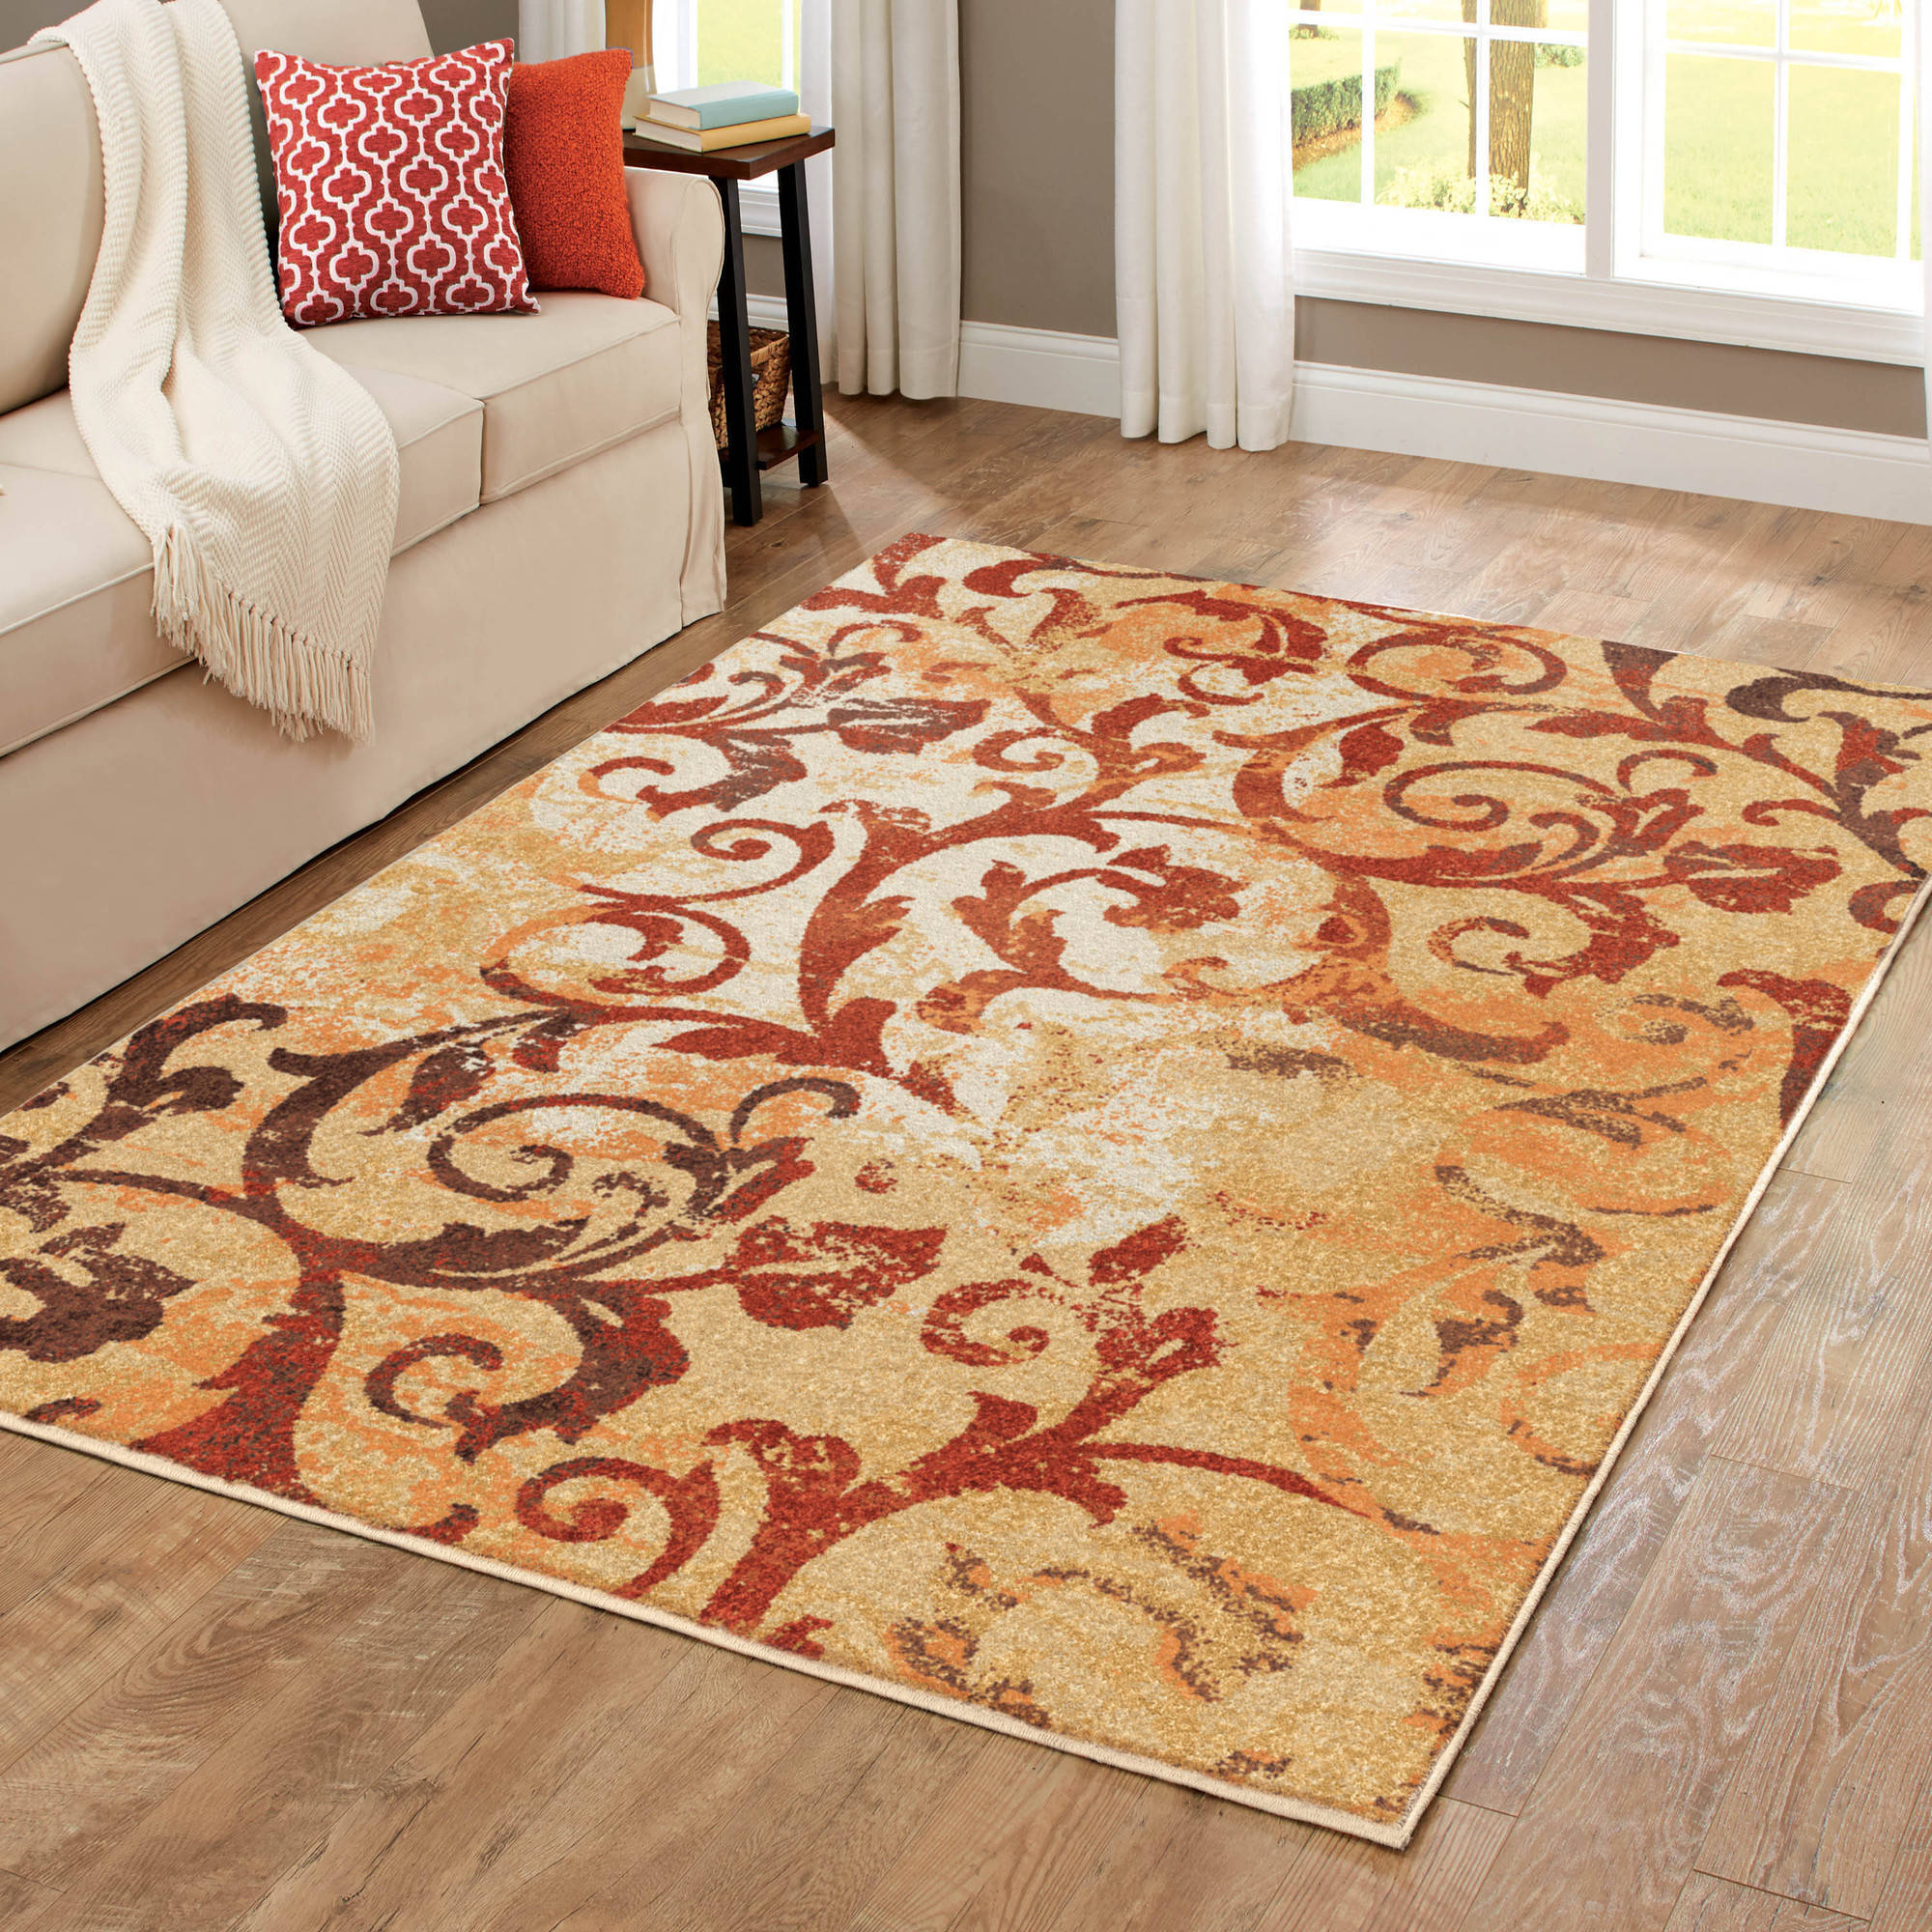 Better Homes And Gardens Scrollwork Area Rug